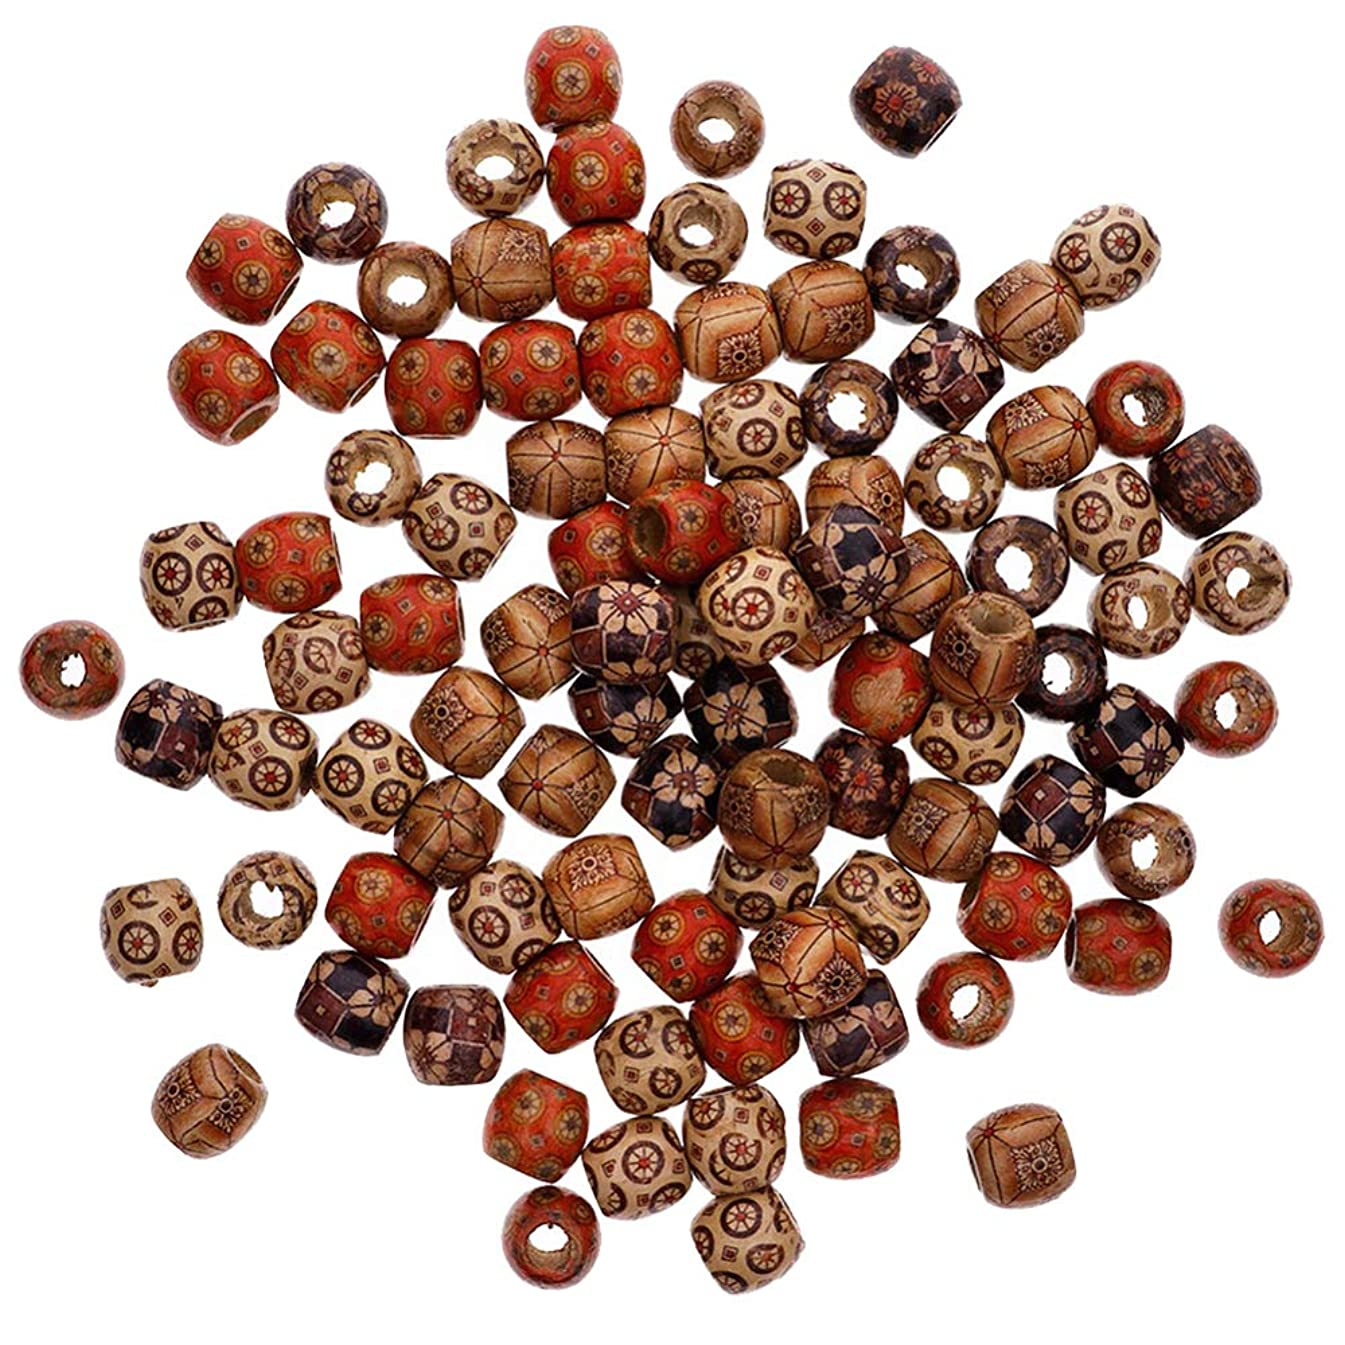 200 Pieces 17mm Assorted Painted Barrel Wooden Beads, Beading DIY Loose Wooden Beads